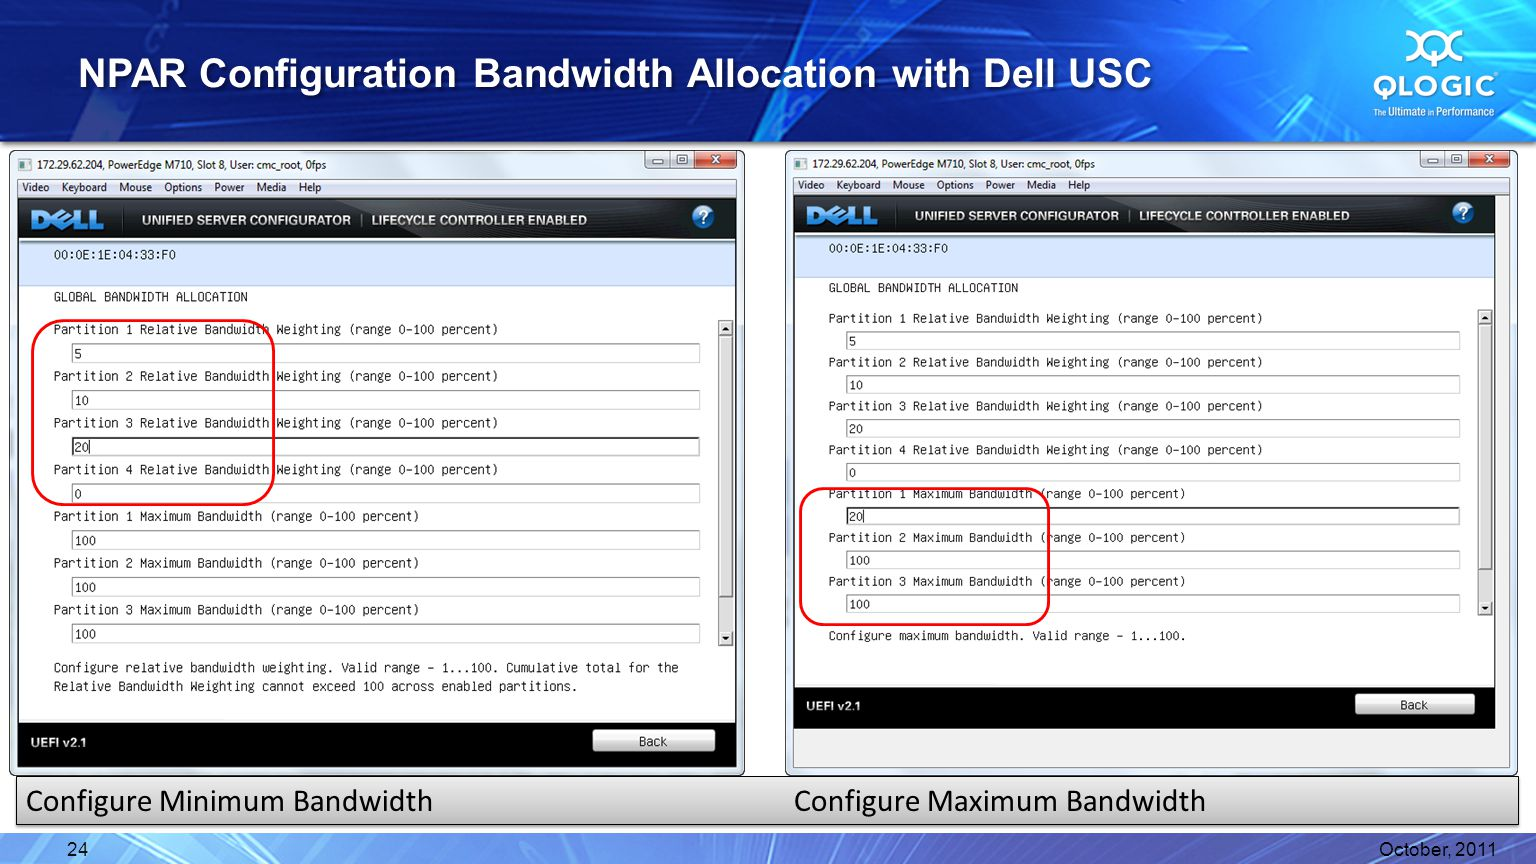 NPAR Configuration Bandwidth Allocation with Dell USC